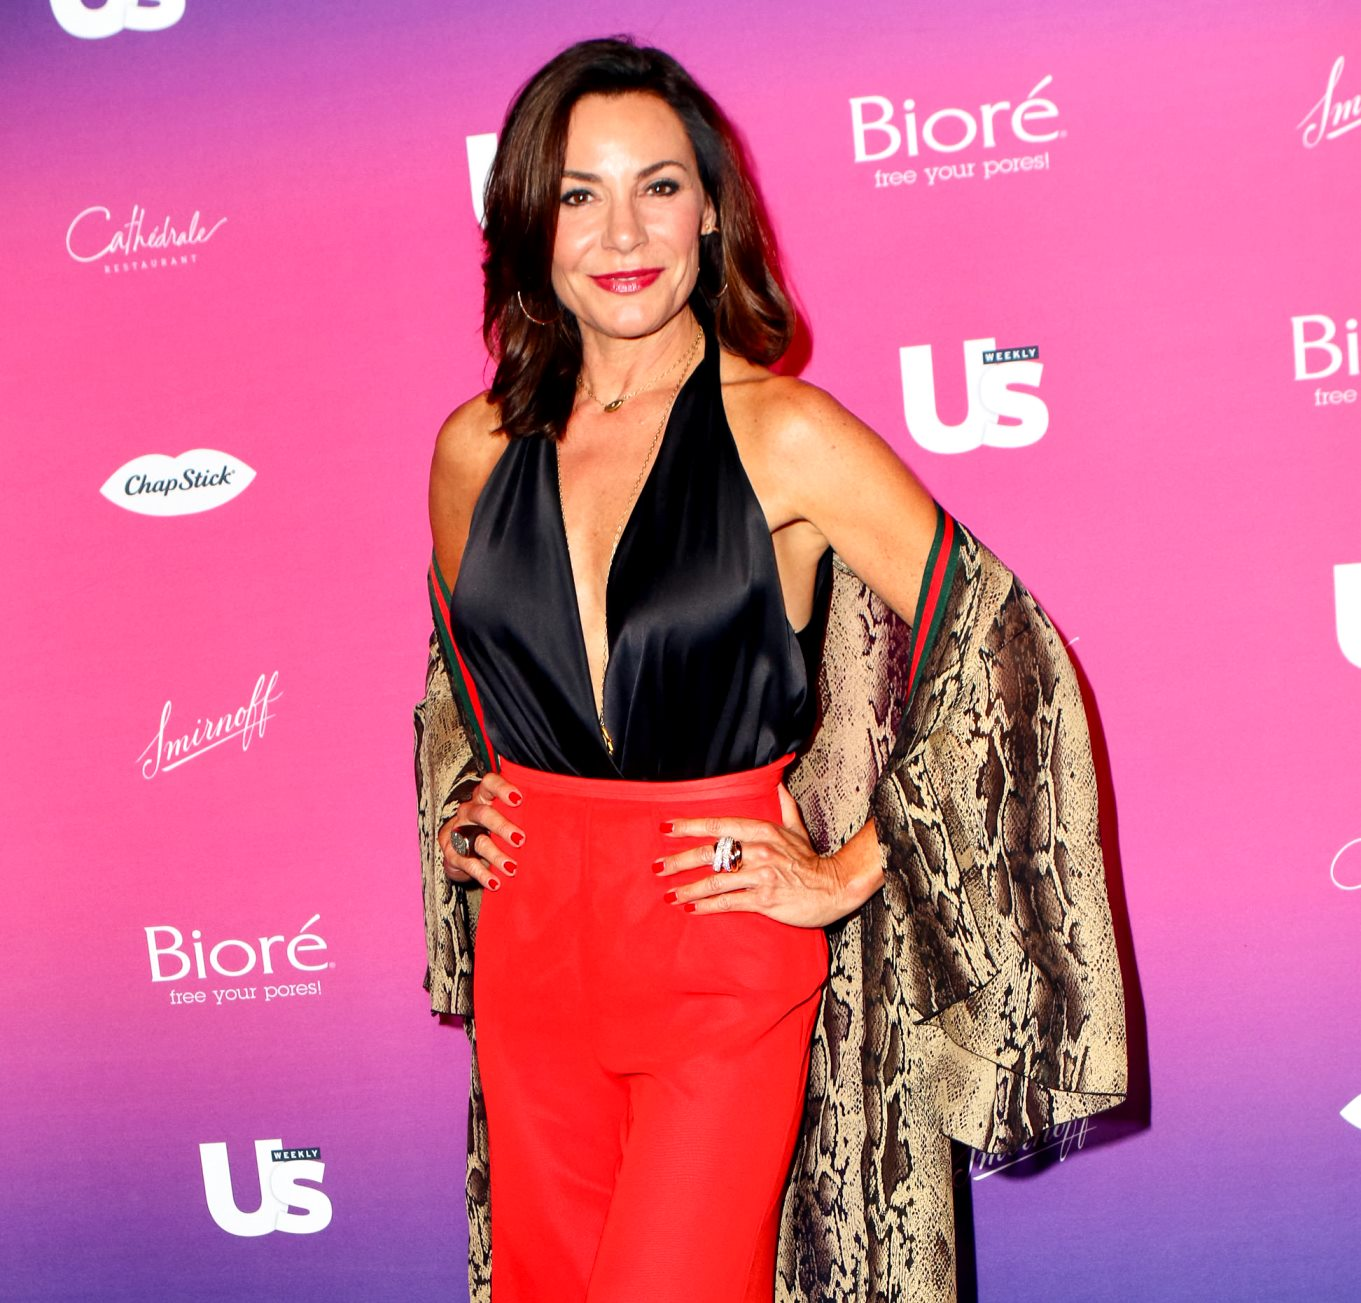 RHONY's Luann de Lesseps Explains Why She Believes Her Arrest Was a Form of Bullying, Plus She Reveals if She's Sober for Good